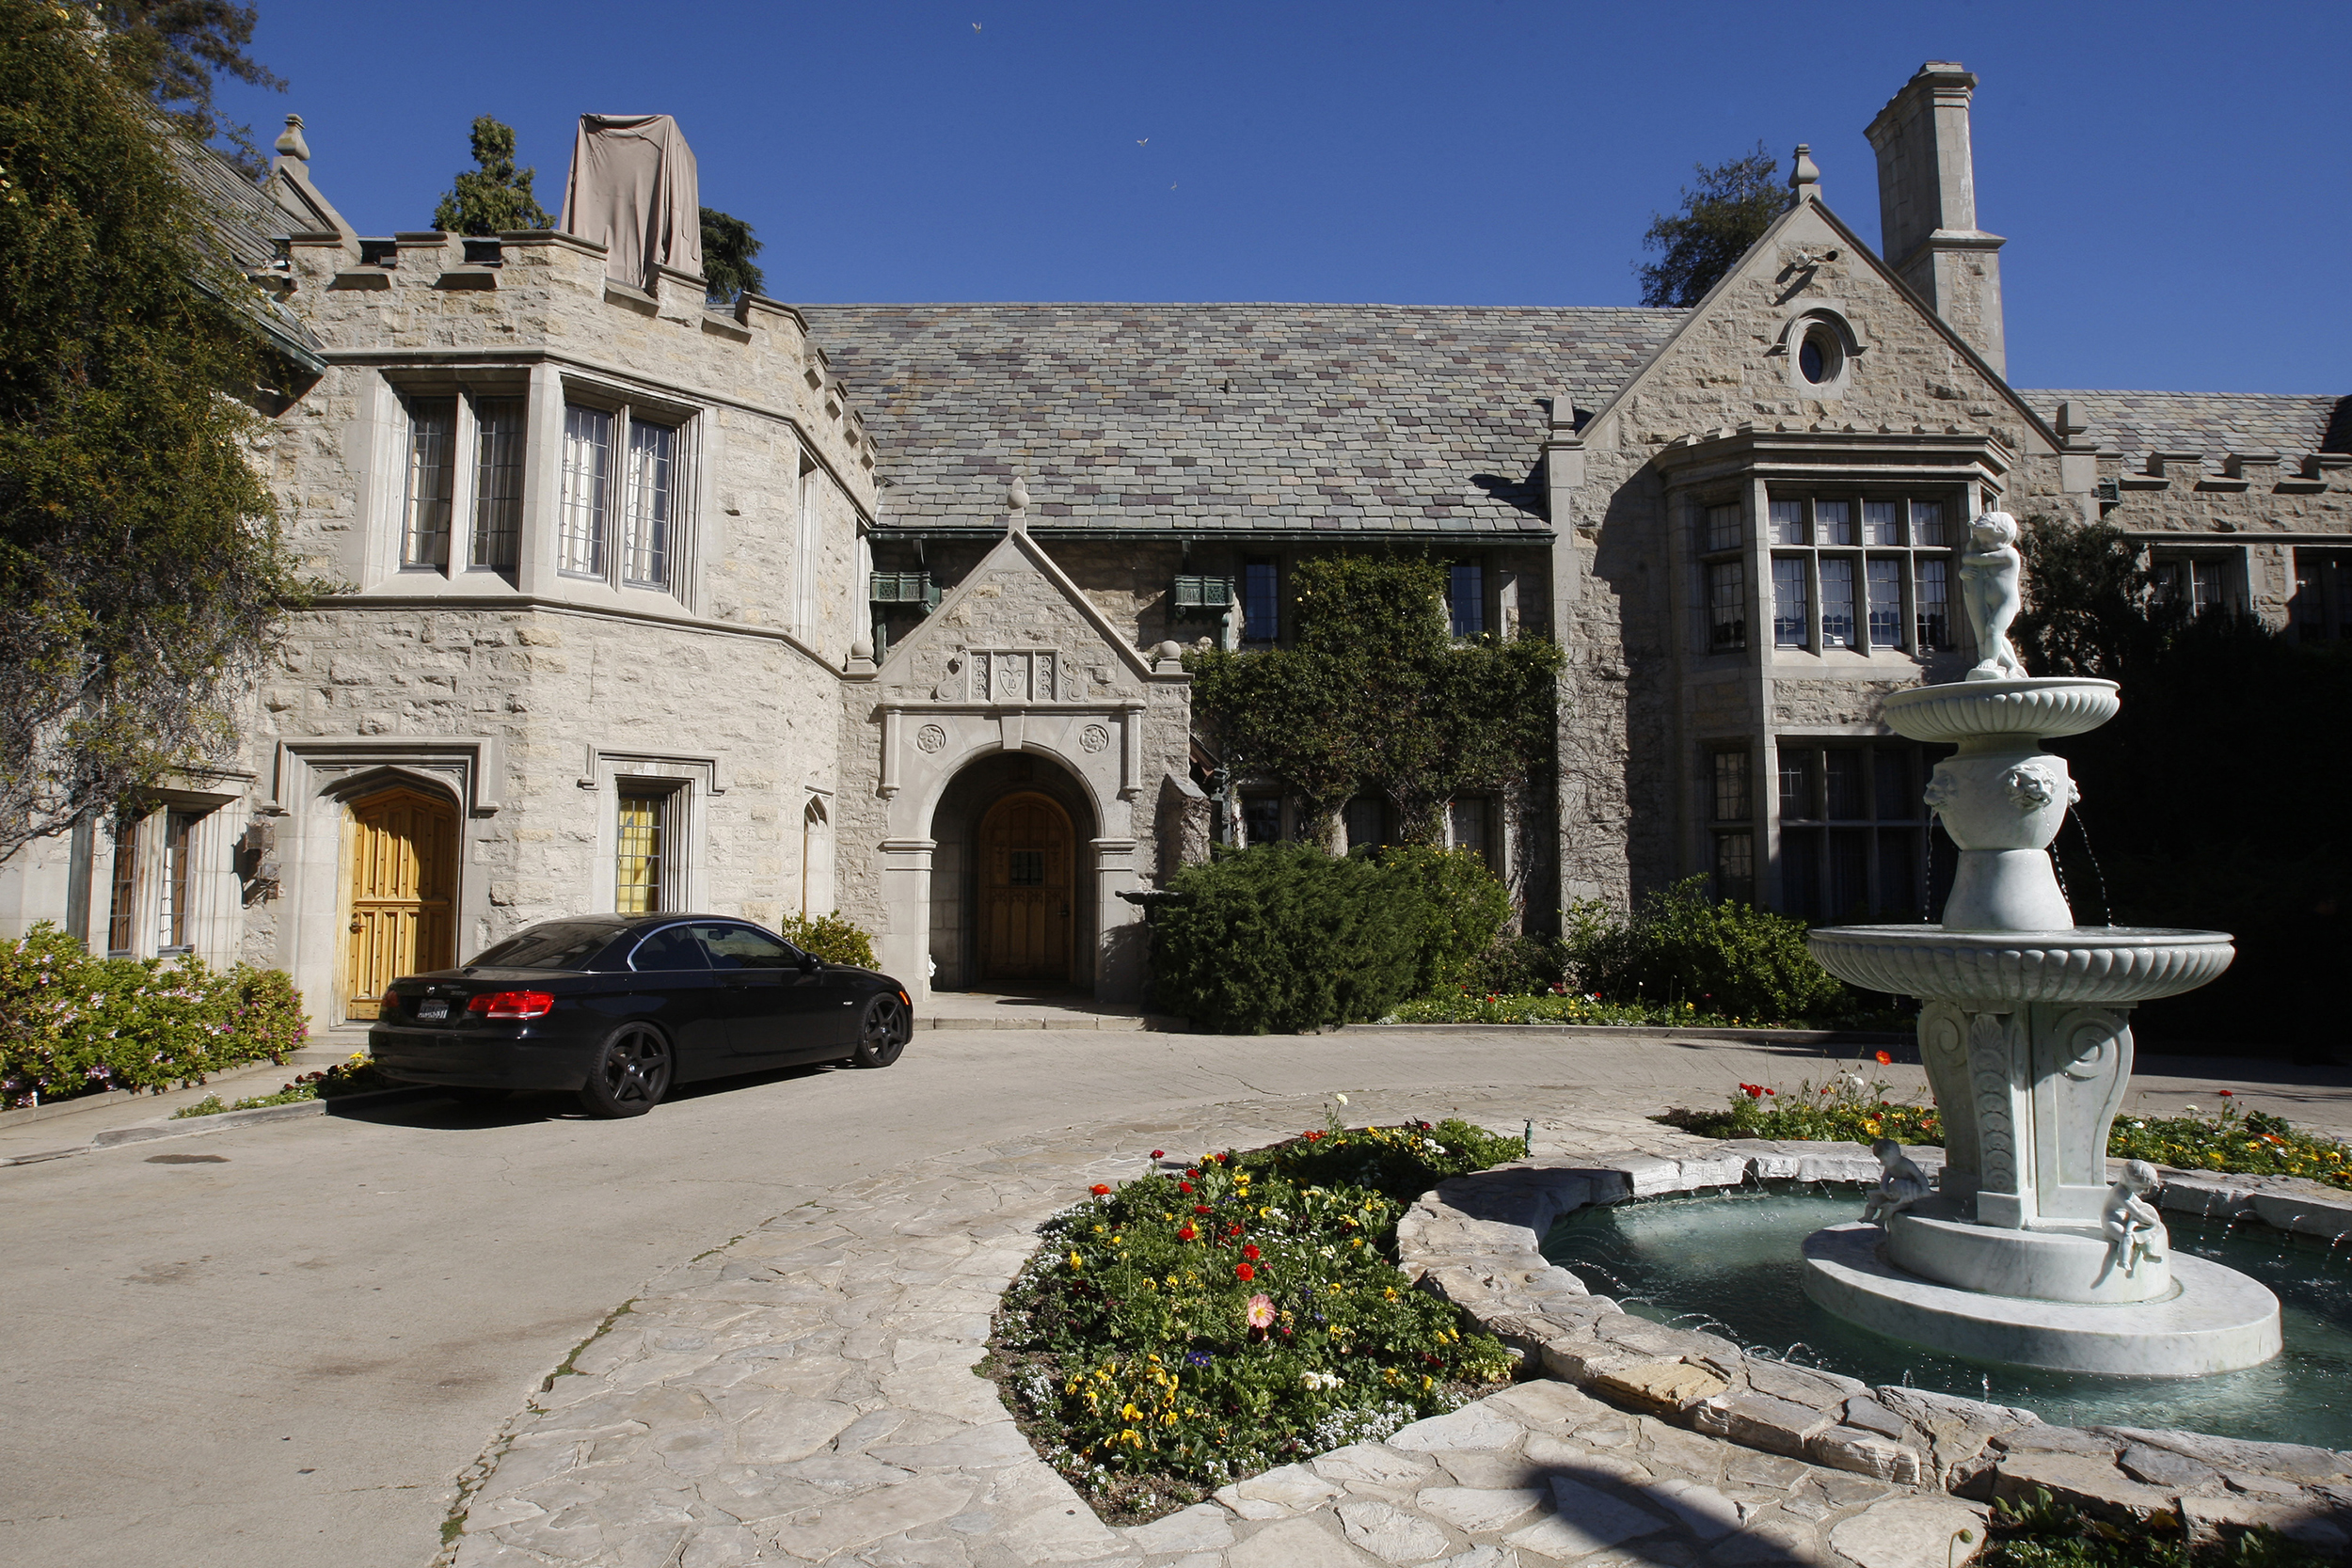 After Hugh Hefner S Death What Will Happen To The Playboy Mansion